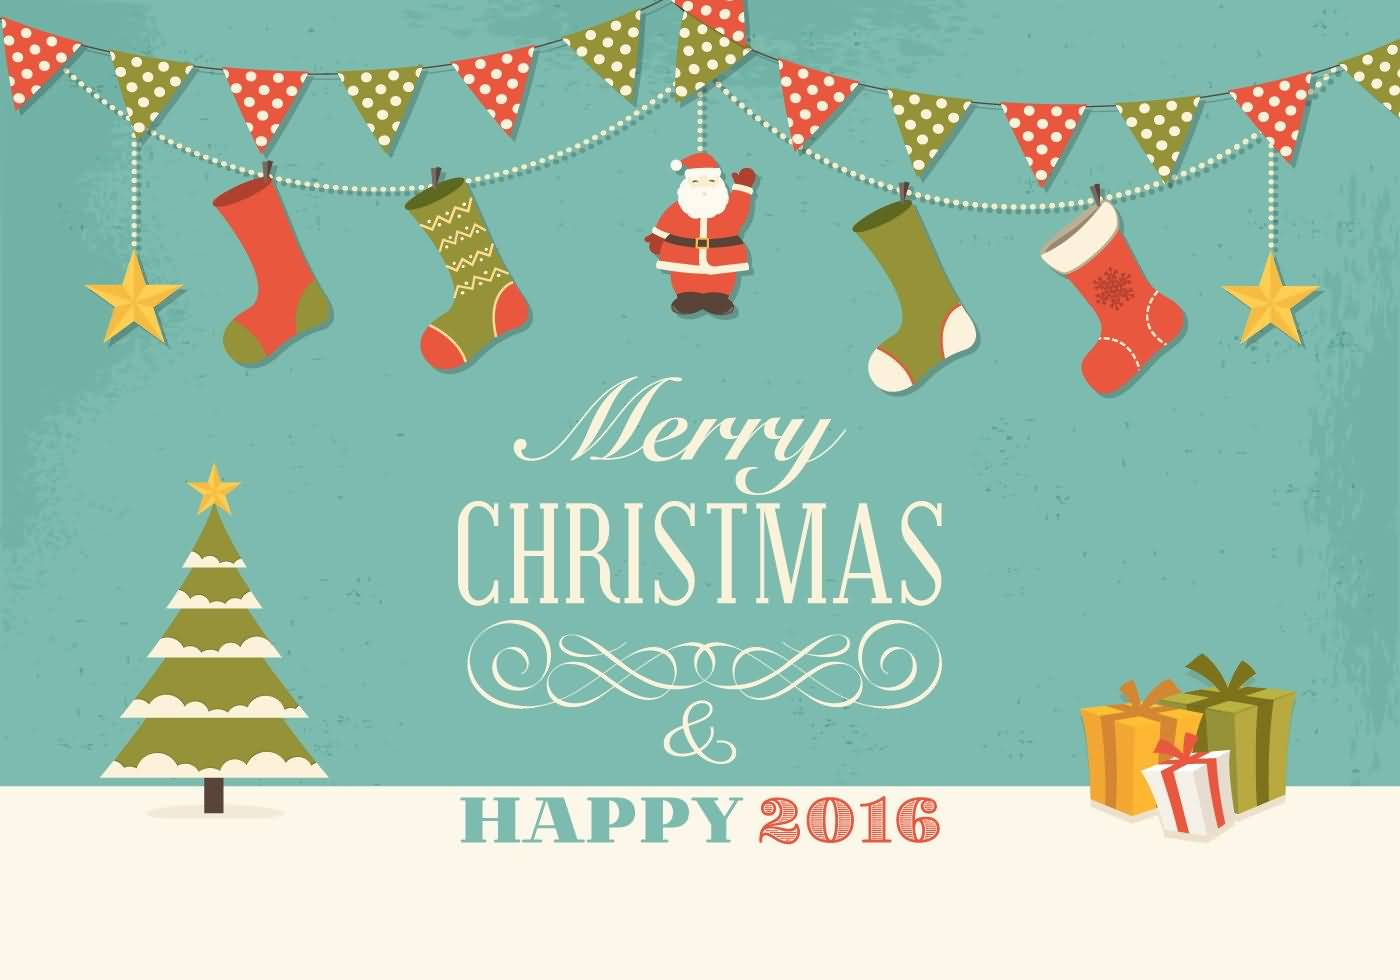 Merry Christmas Cards Vector Image Picture Photo Wallpaper 03